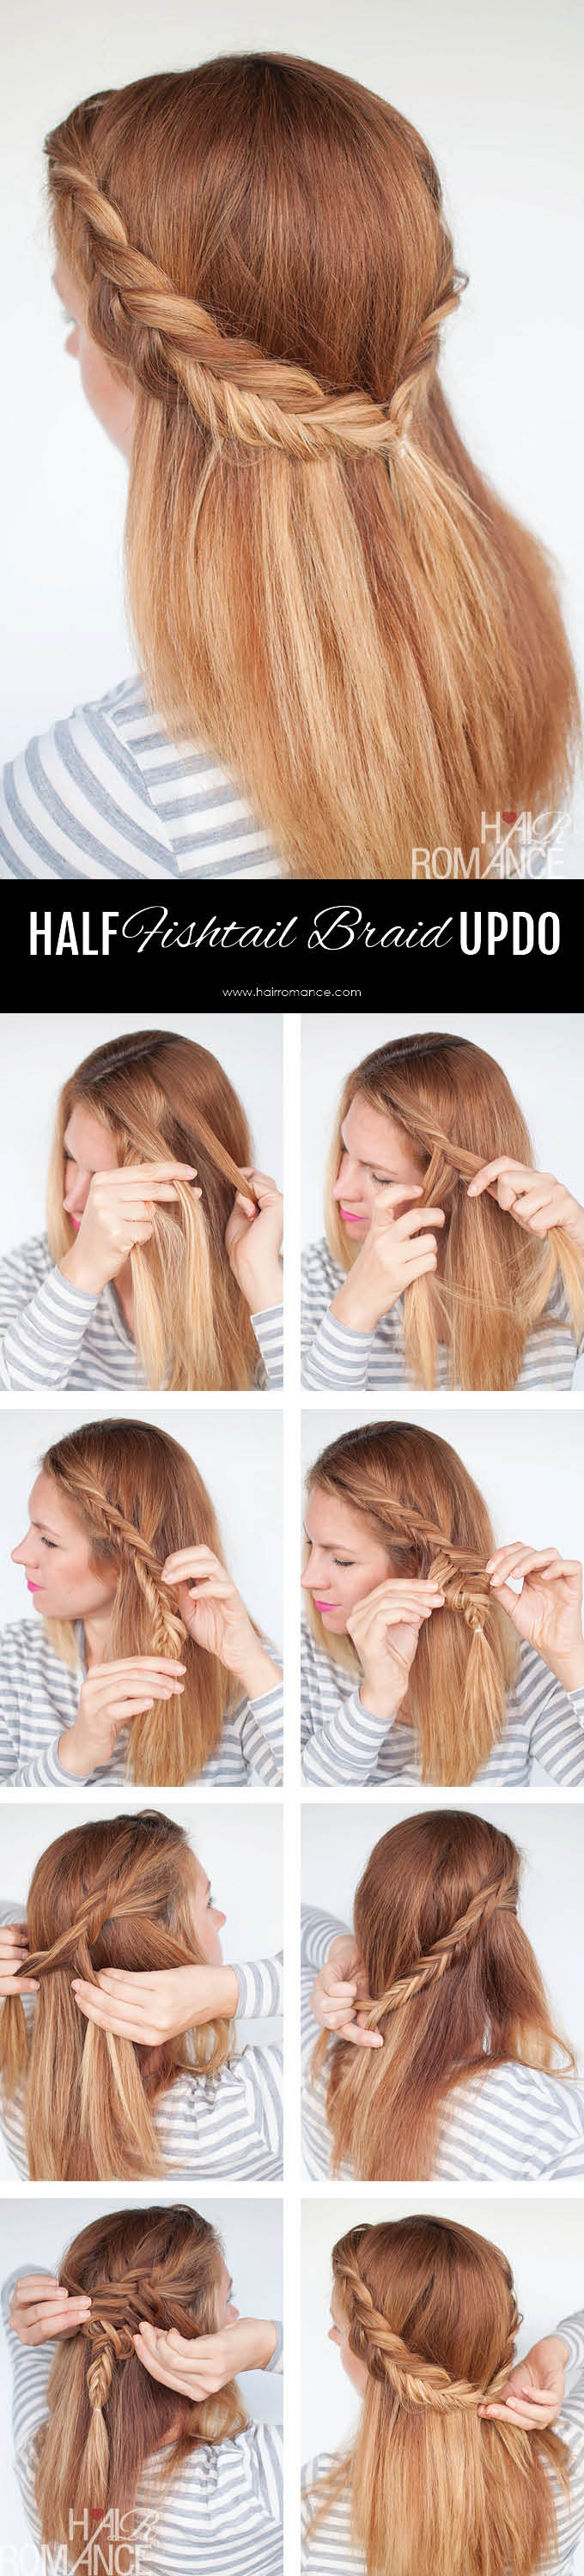 The fishtail plait: step-by-step instructions and all the inspo.